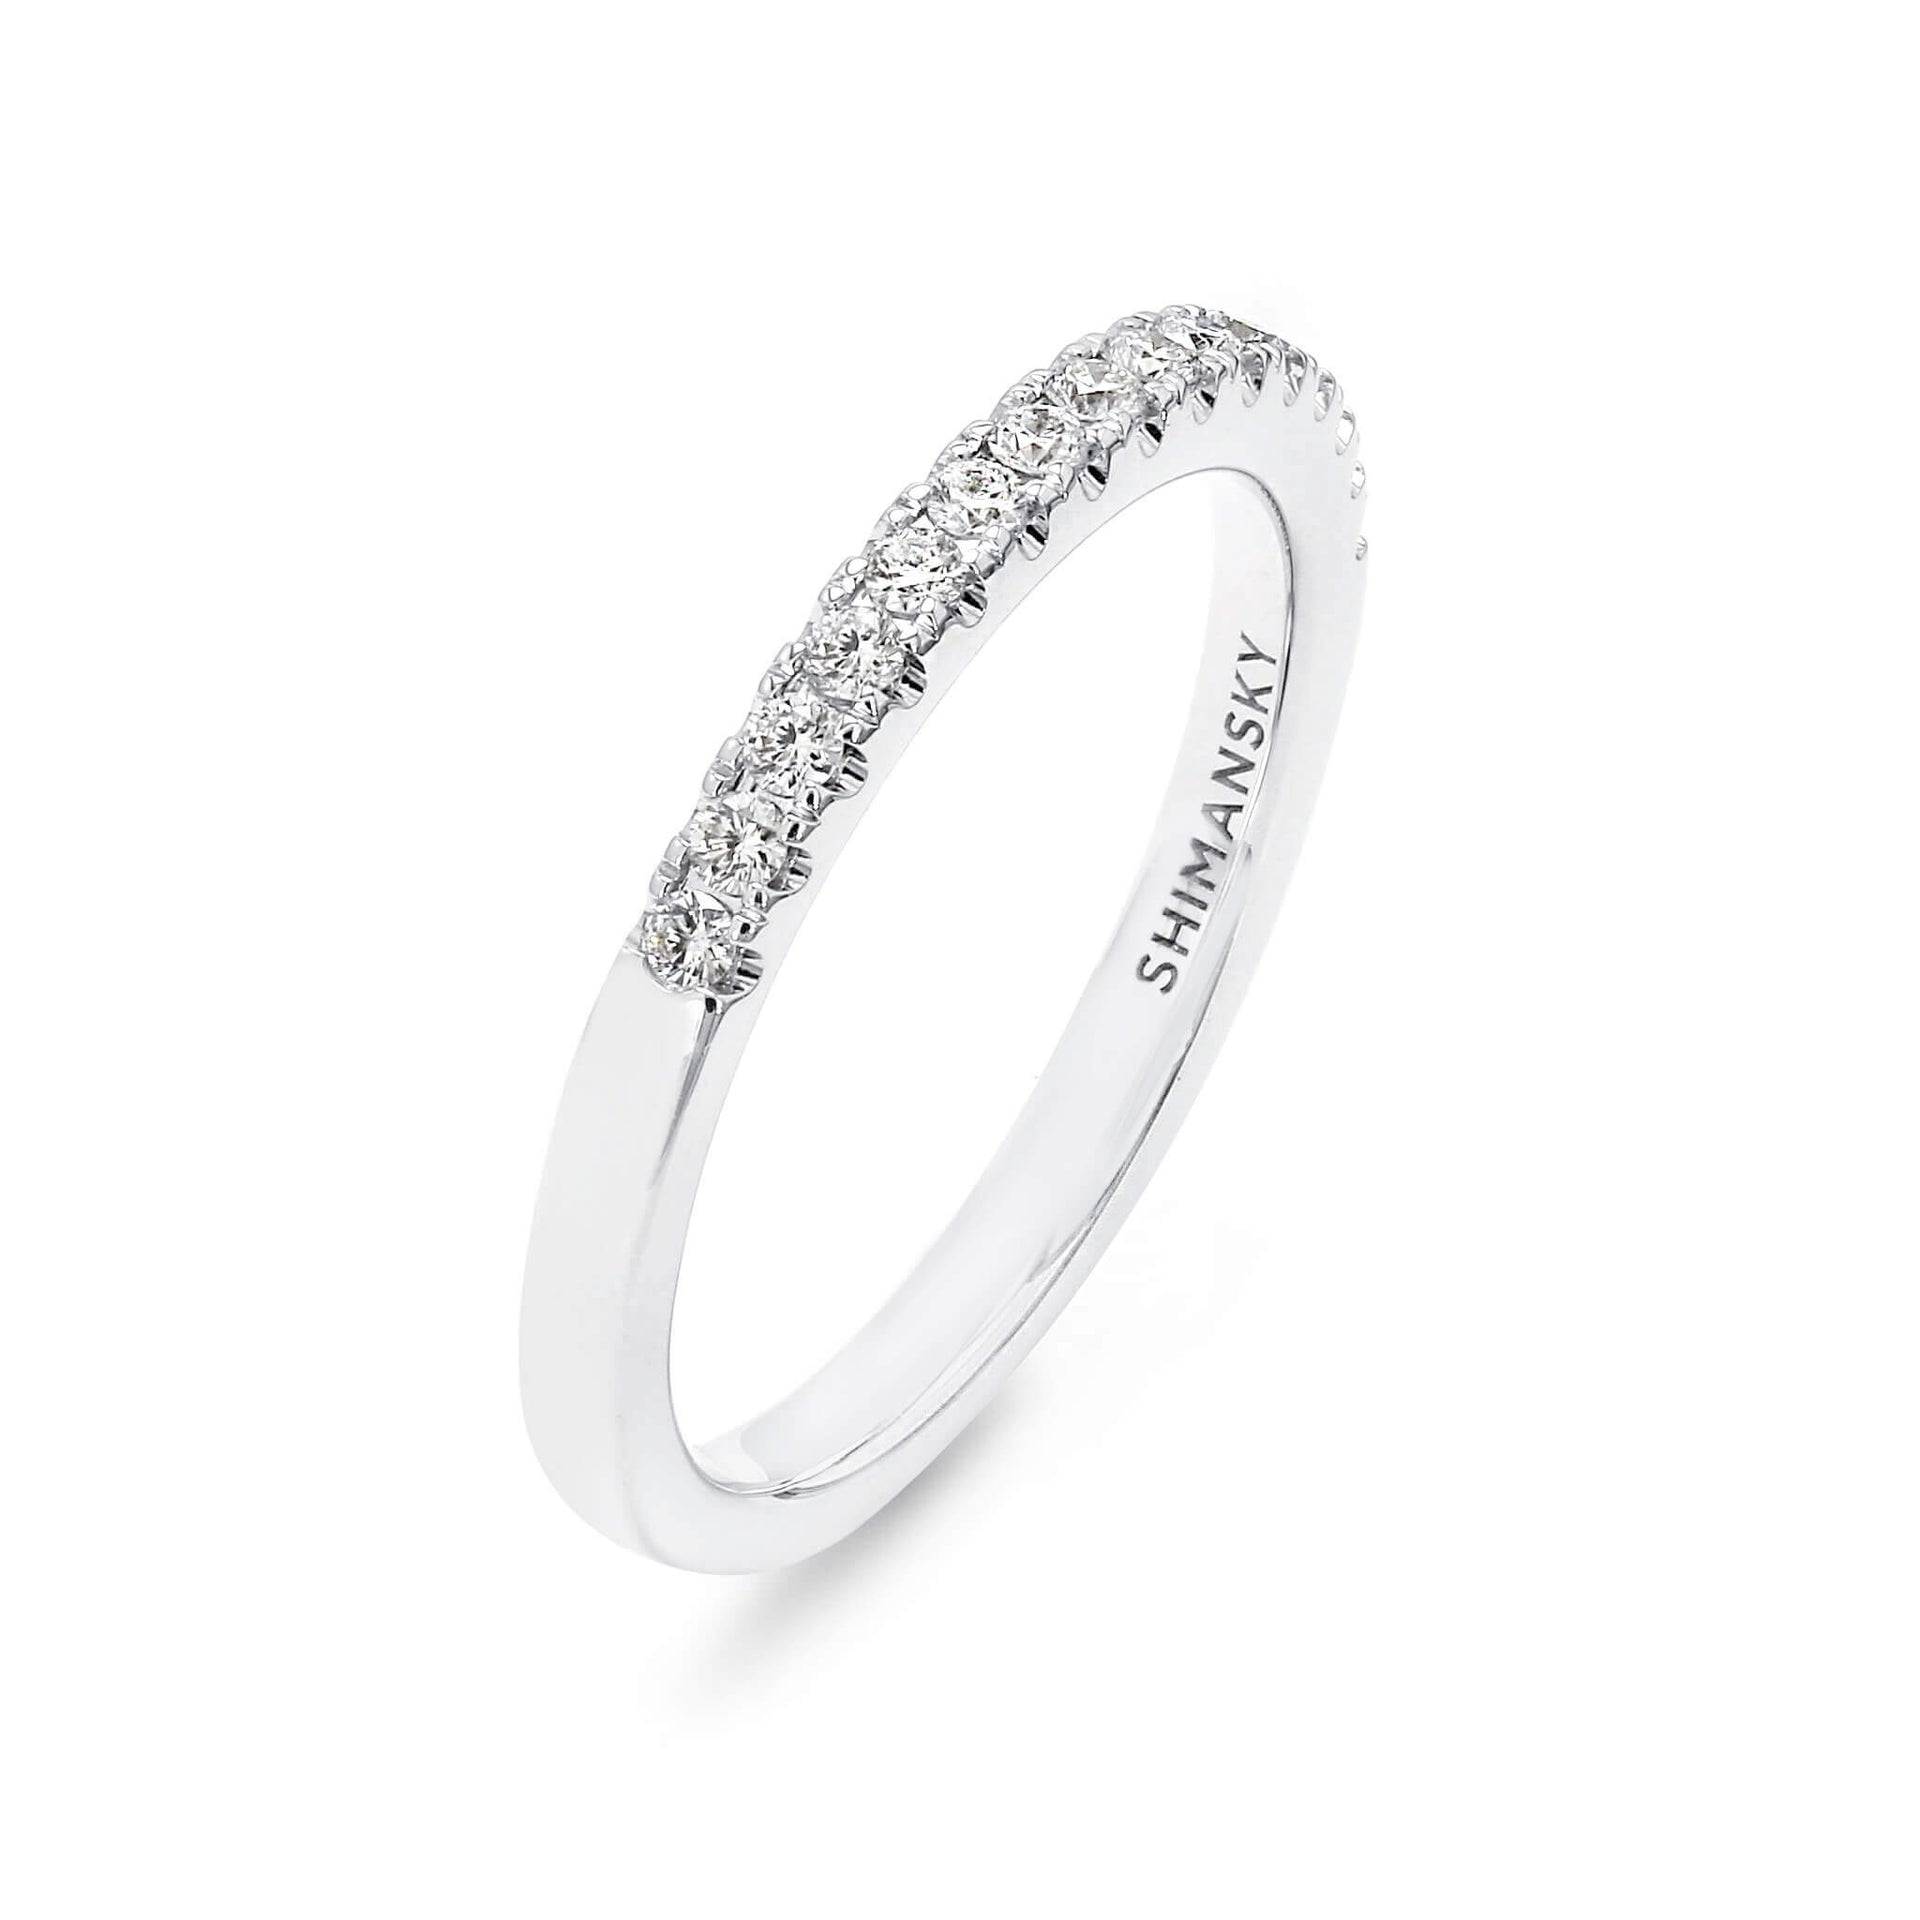 Round Brilliant Cut Micro Set Diamond Wedding Band in 18K White Gold 3D View